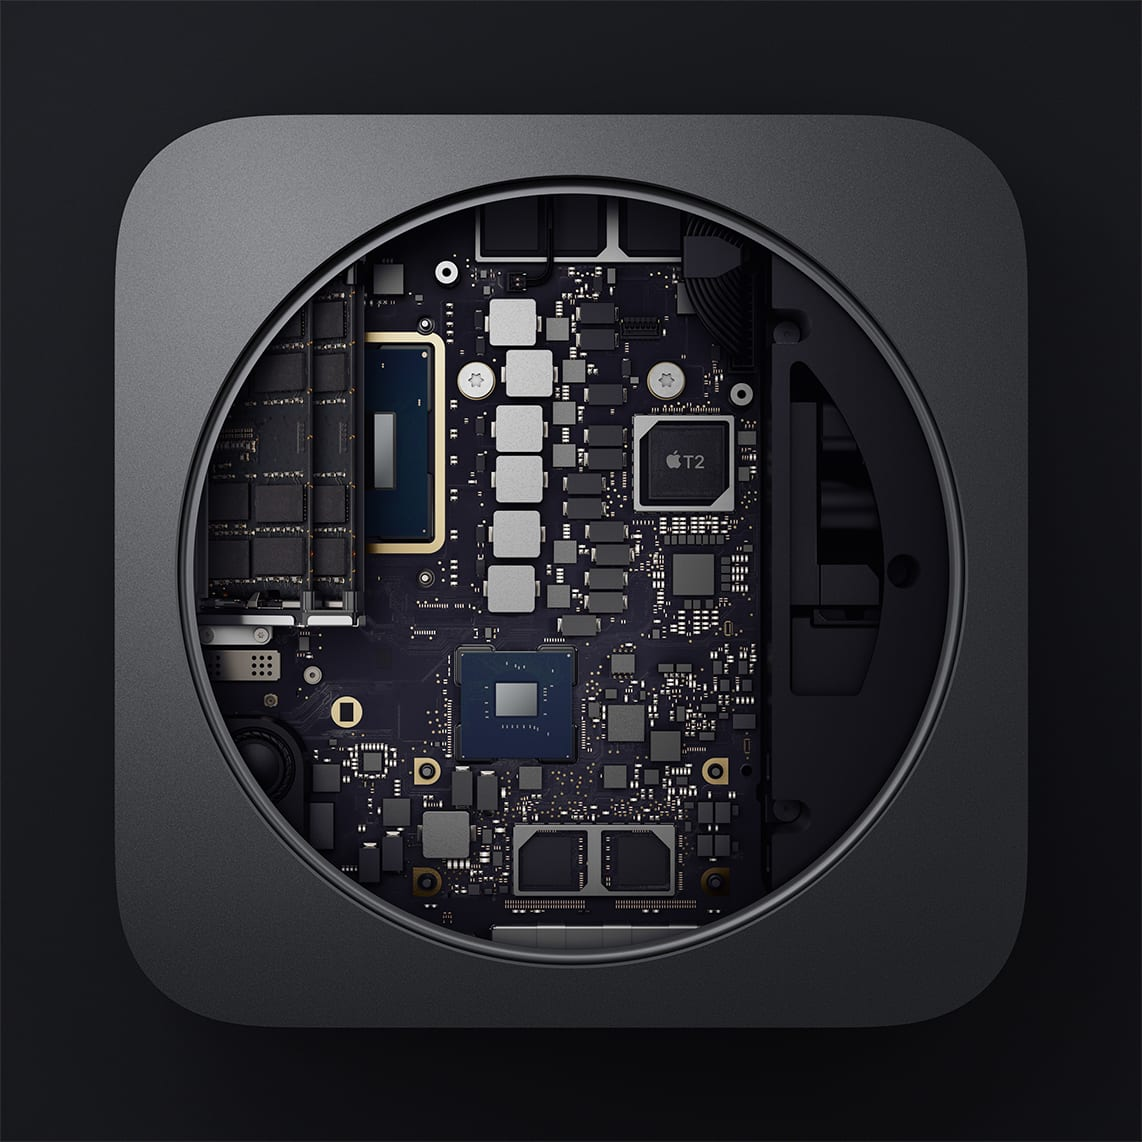 (The inside of the new Mac mini. Image courtesy of Apple)